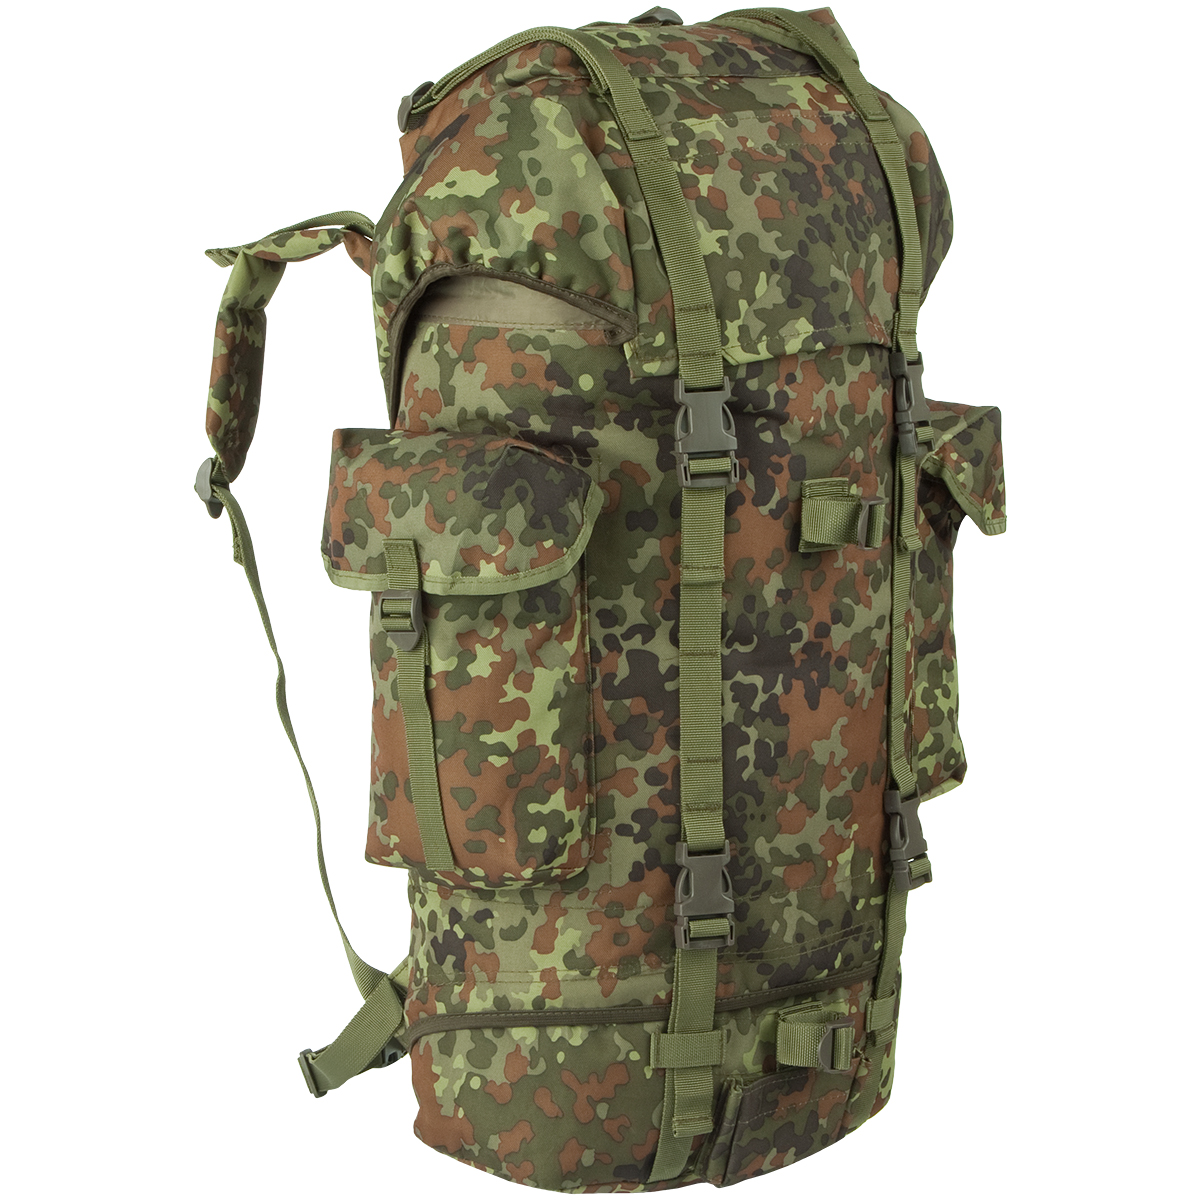 34cee78556c Details about German Army Patrol Pack Hiking Rucksack Military Backpack 65L  Flecktarn Camo